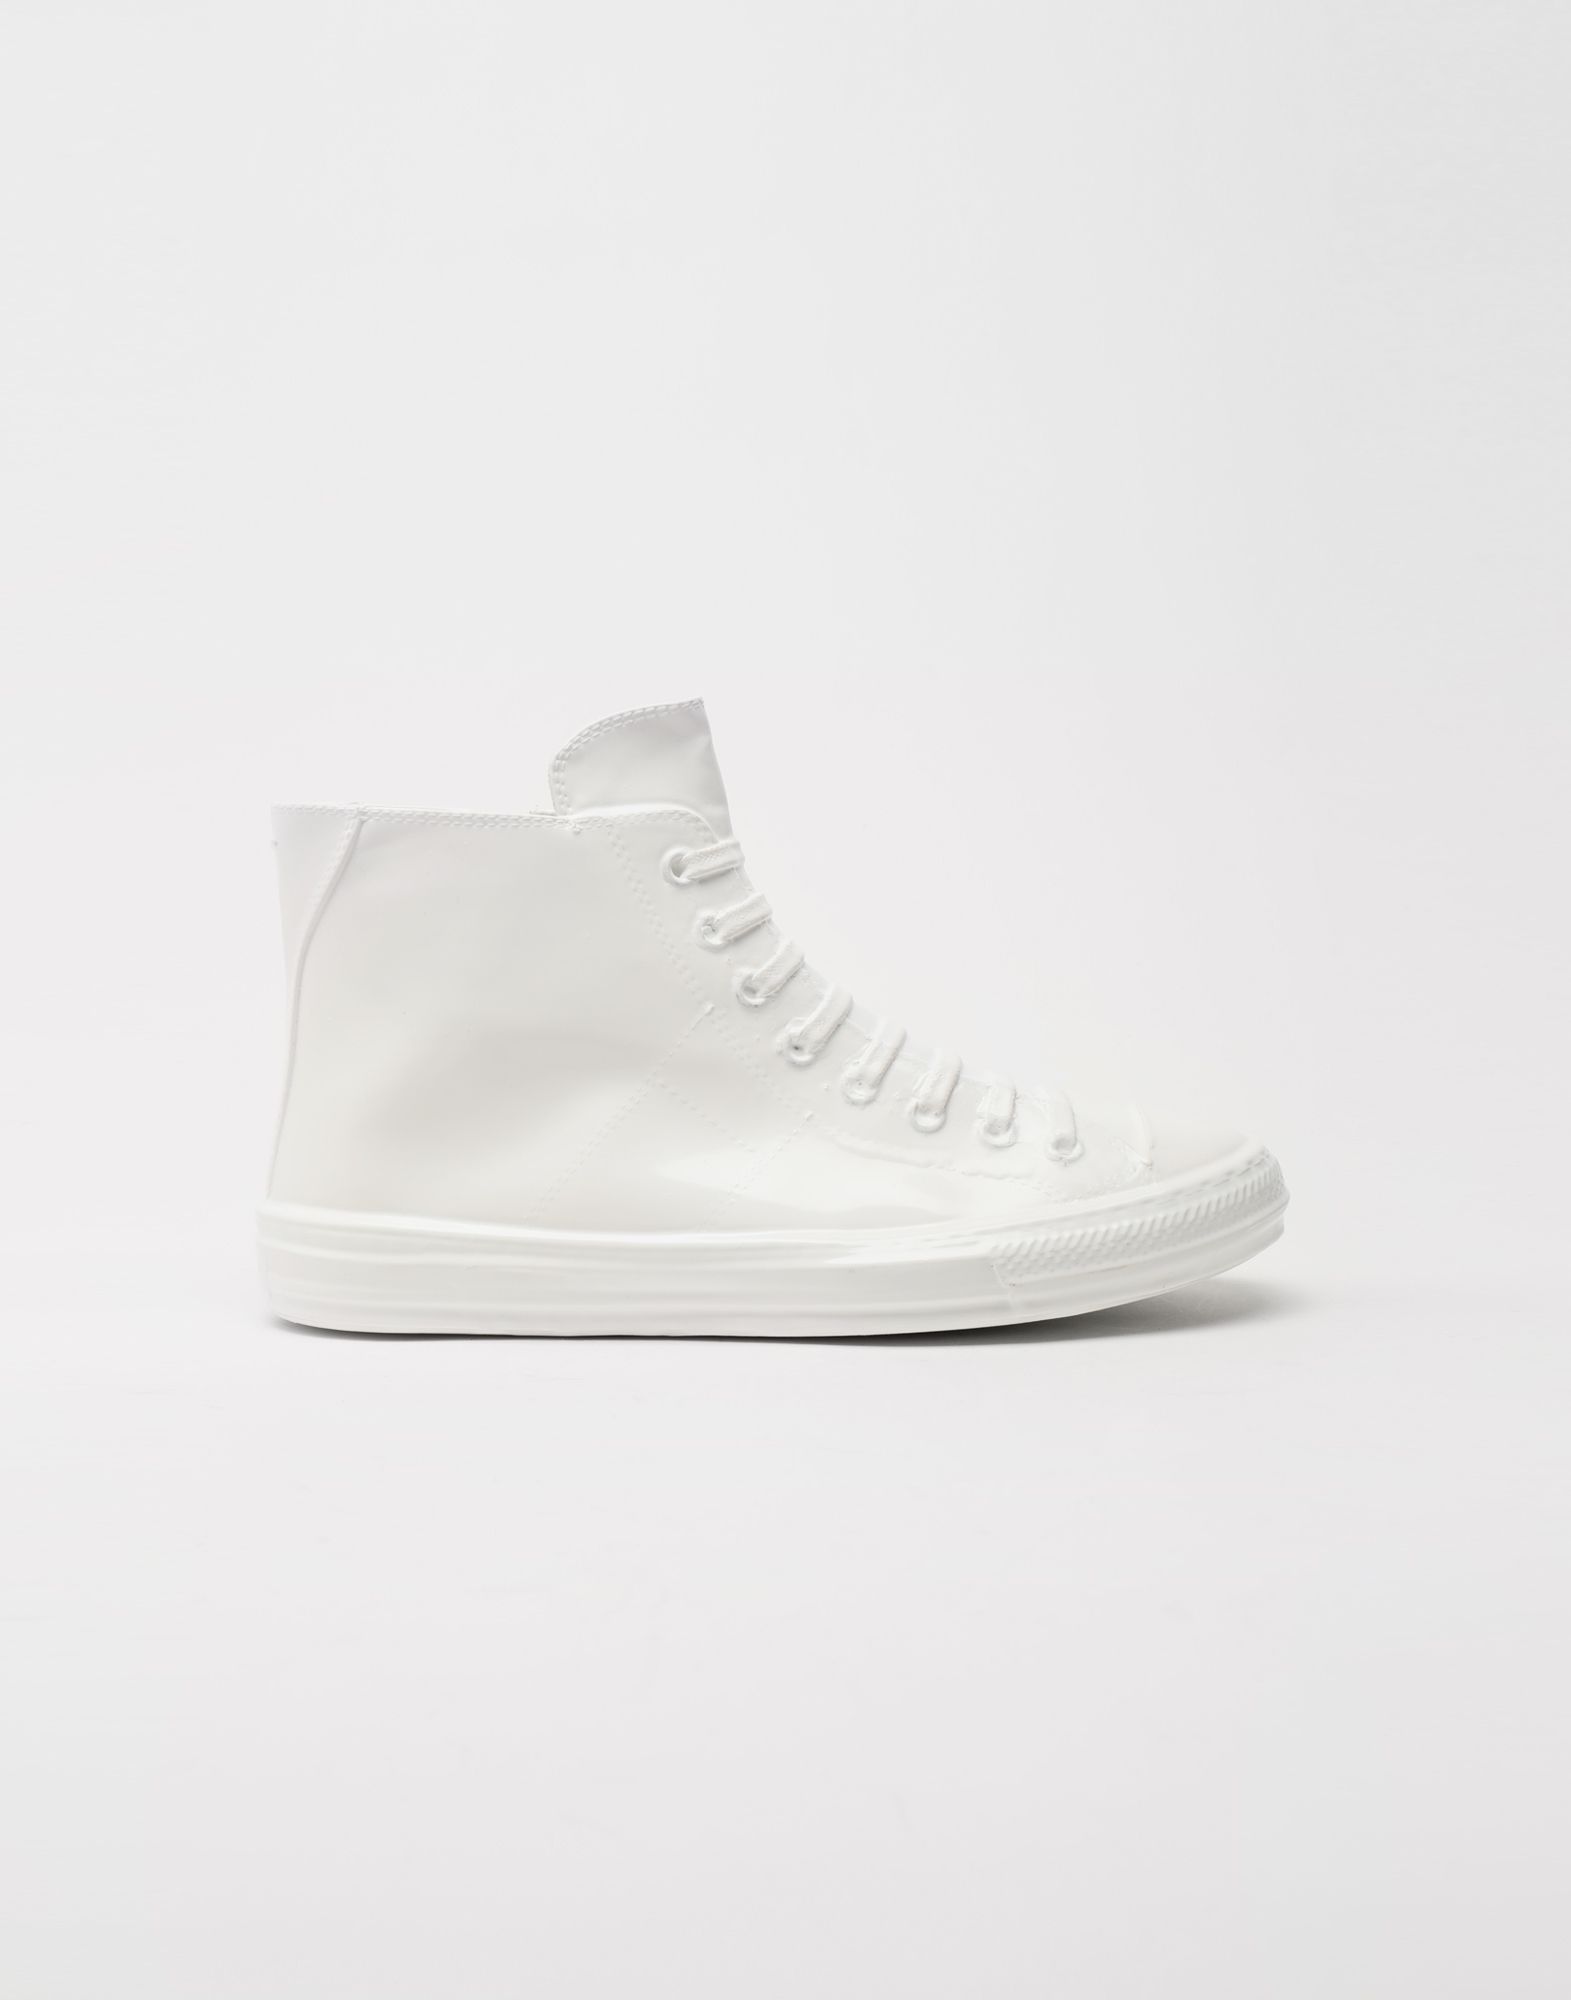 MAISON MARGIELA Plastic casing high-top sneakers Sneakers Man f